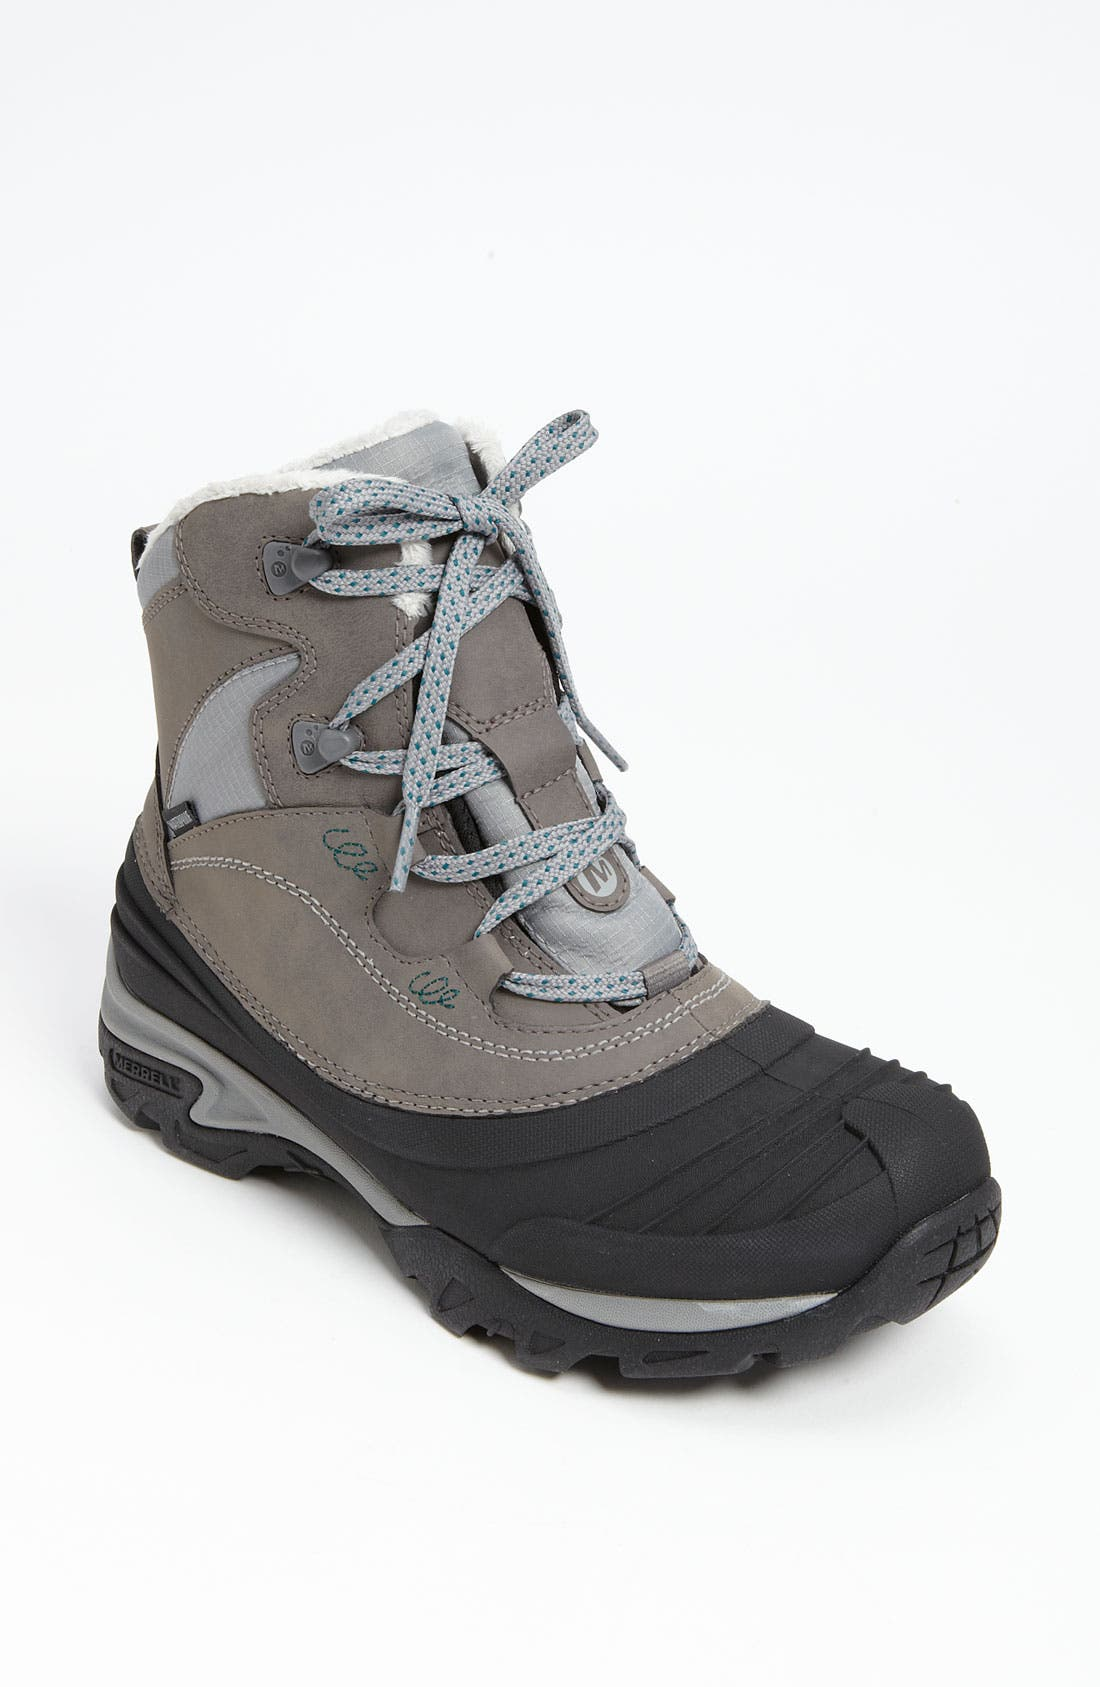 Alternate Image 1 Selected - Merrell 'Snowbound' Boot (Women)